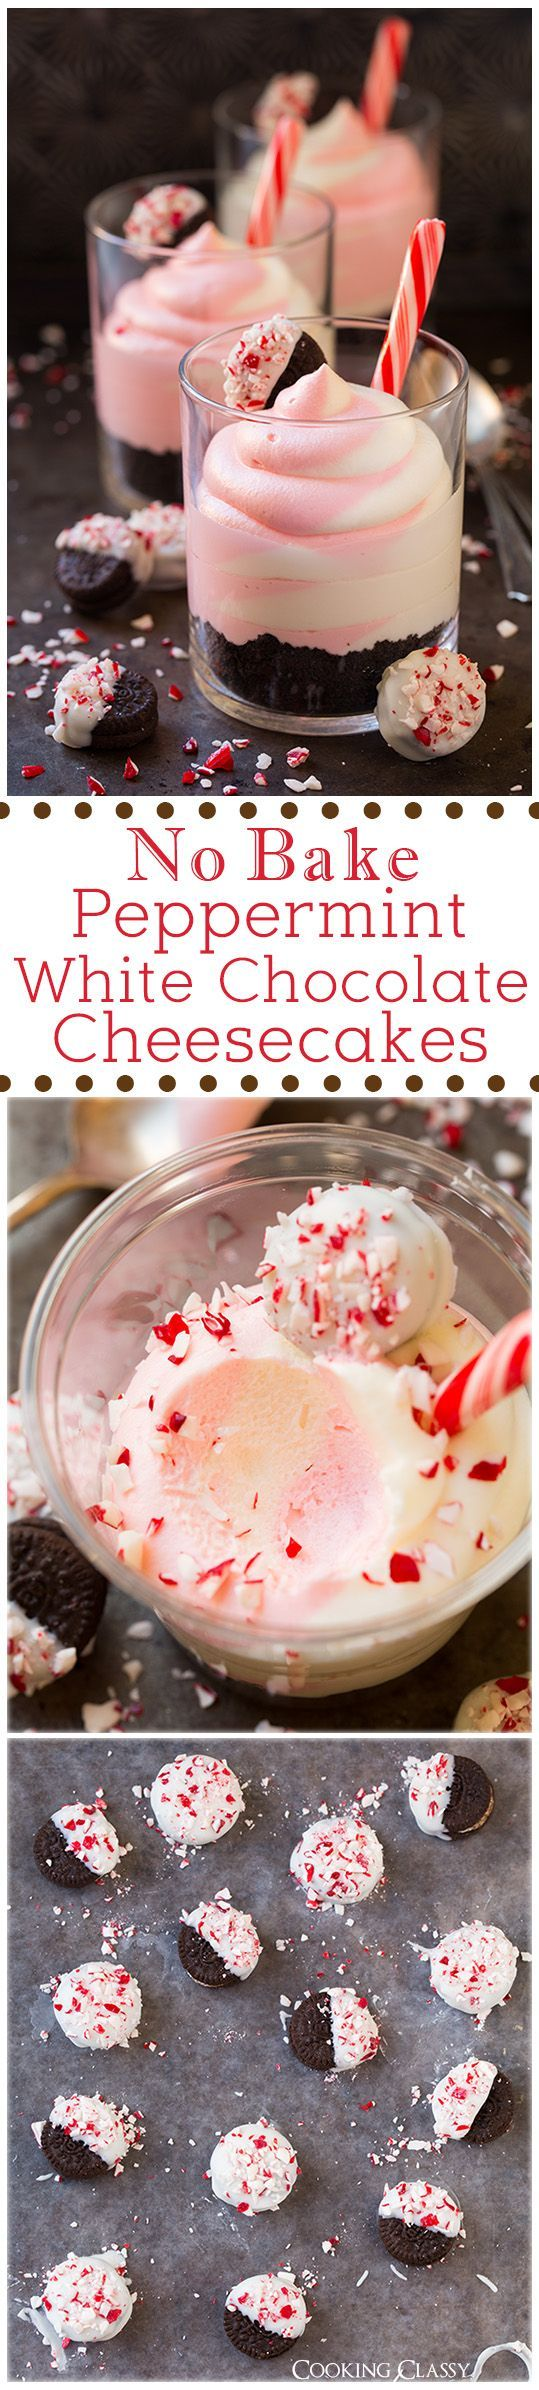 No Bake Peppermint White Chocolate Cheesecakes - these are AMAZING!! Easy to make and they have the perfect texture and flavor.